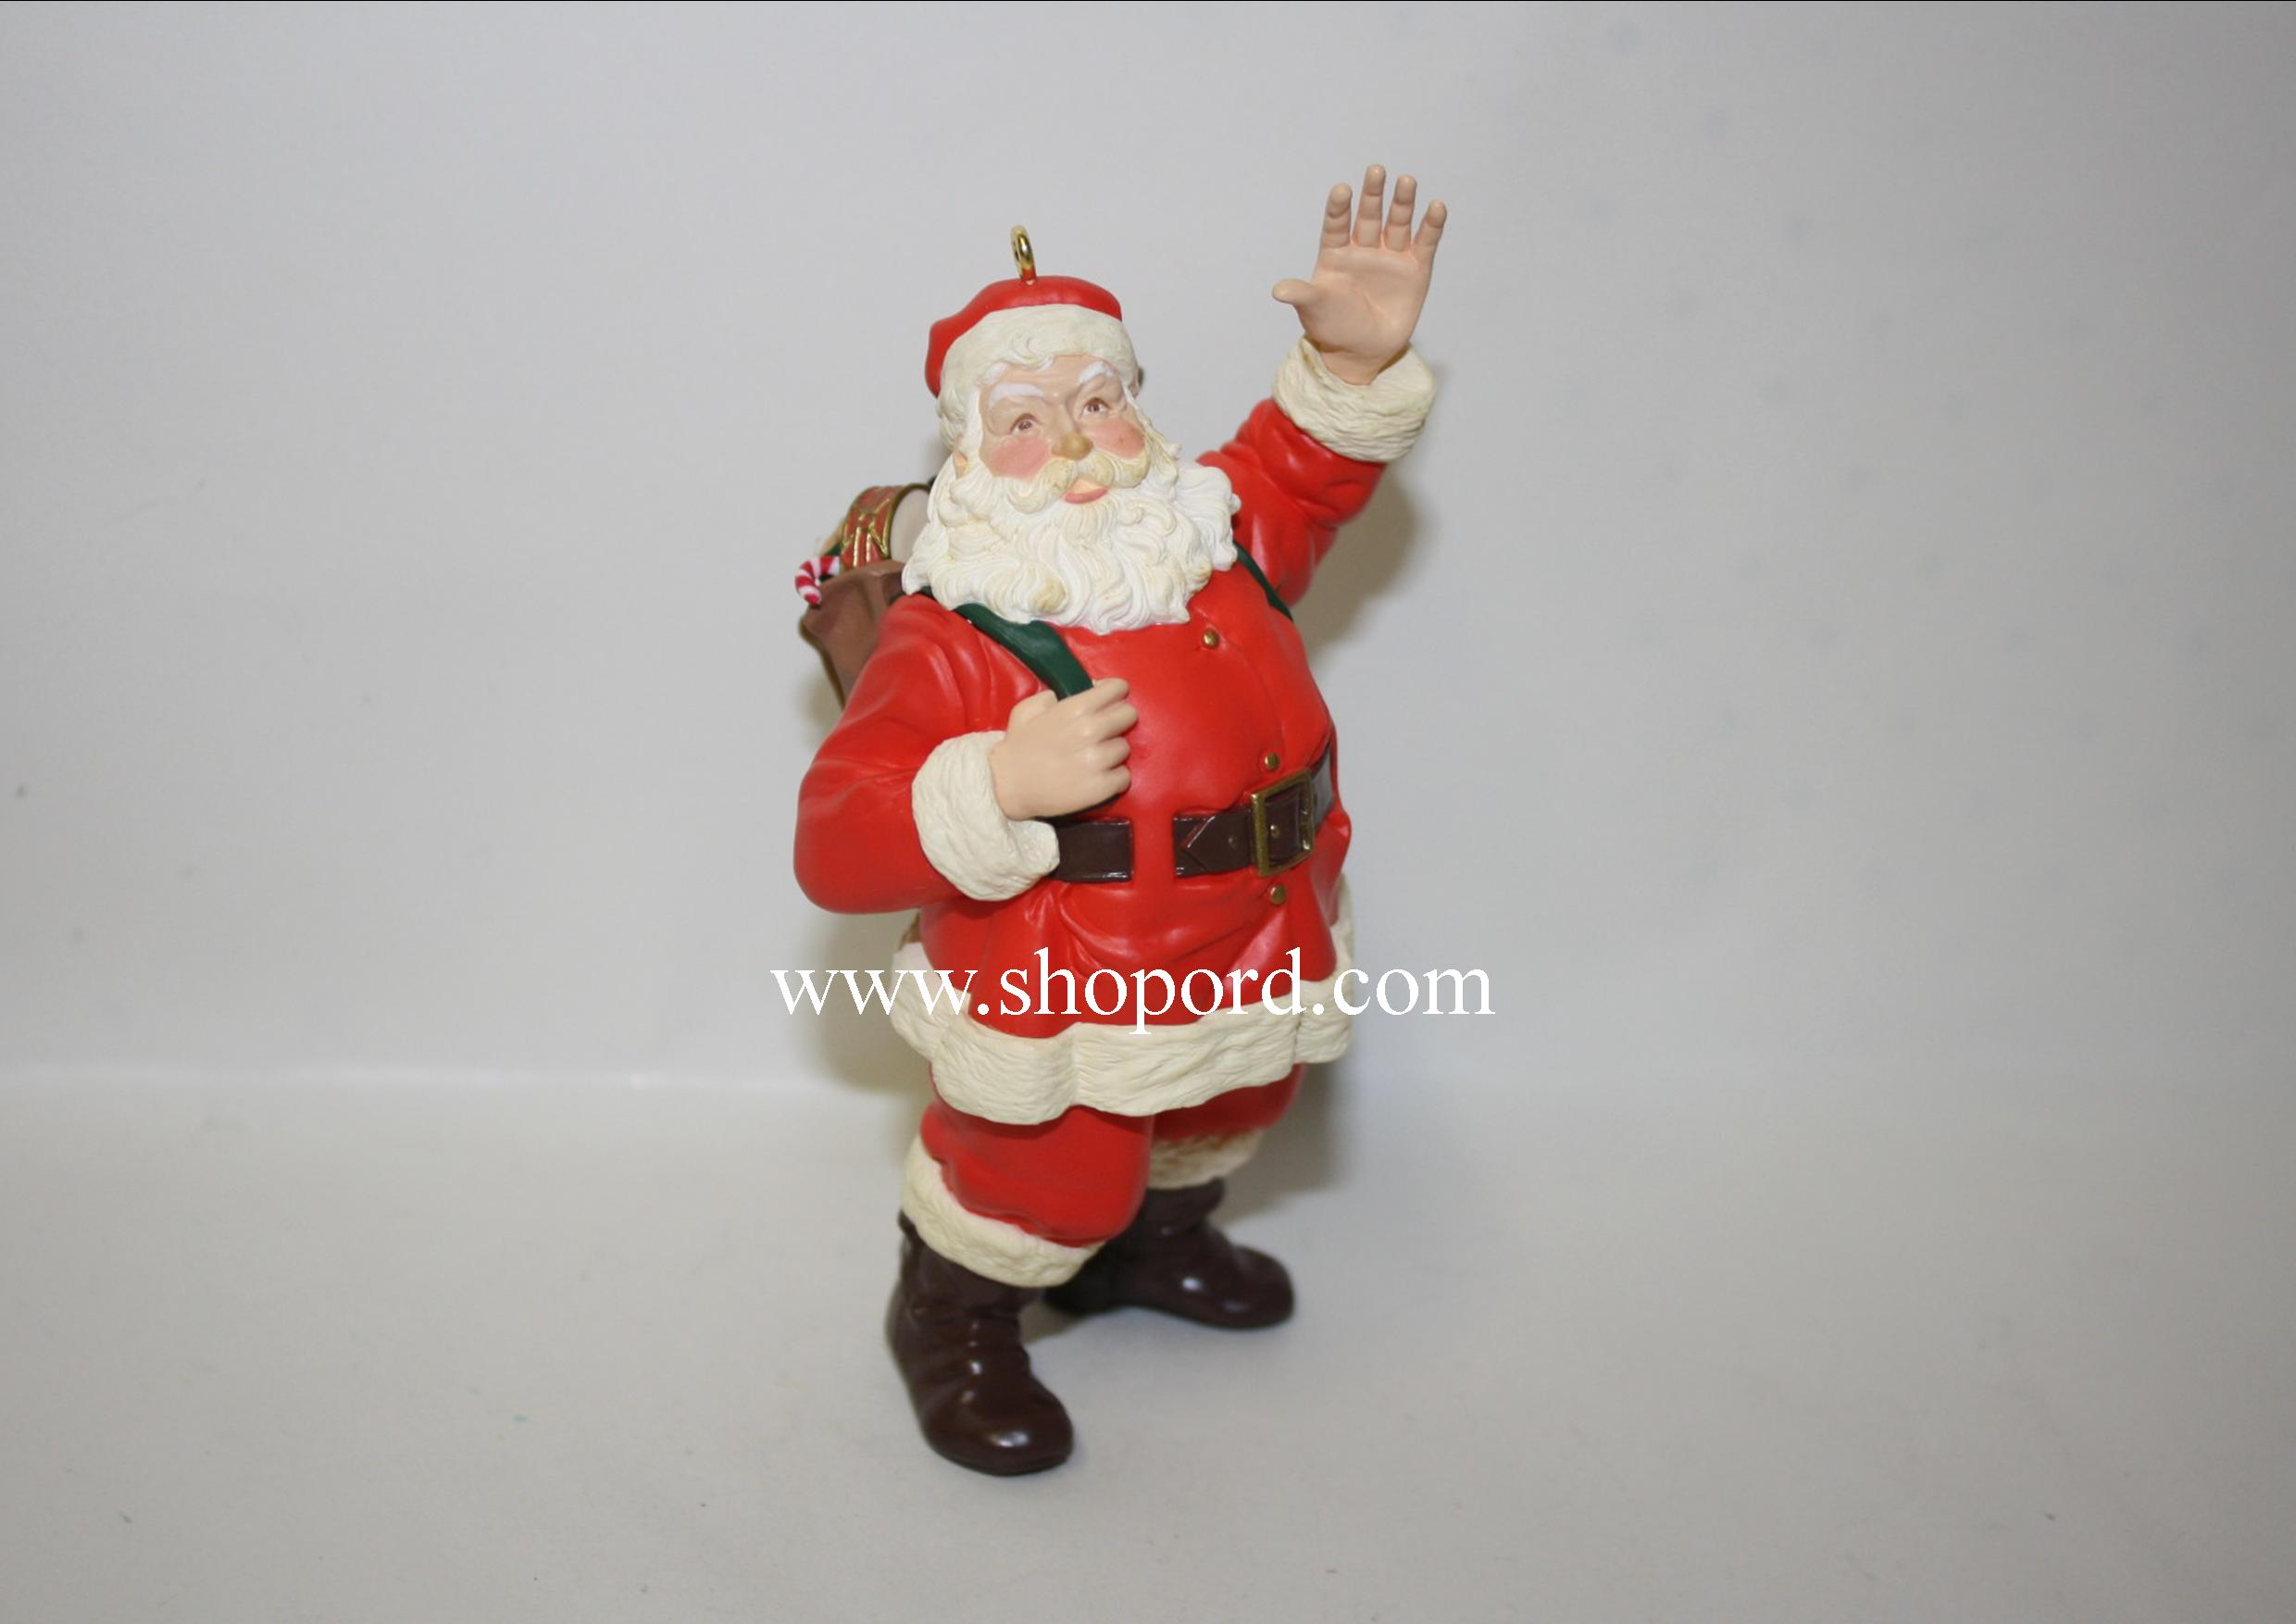 Hallmark 1999 Merry Olde Santa Ornament 10th and Final In The Series QX6359